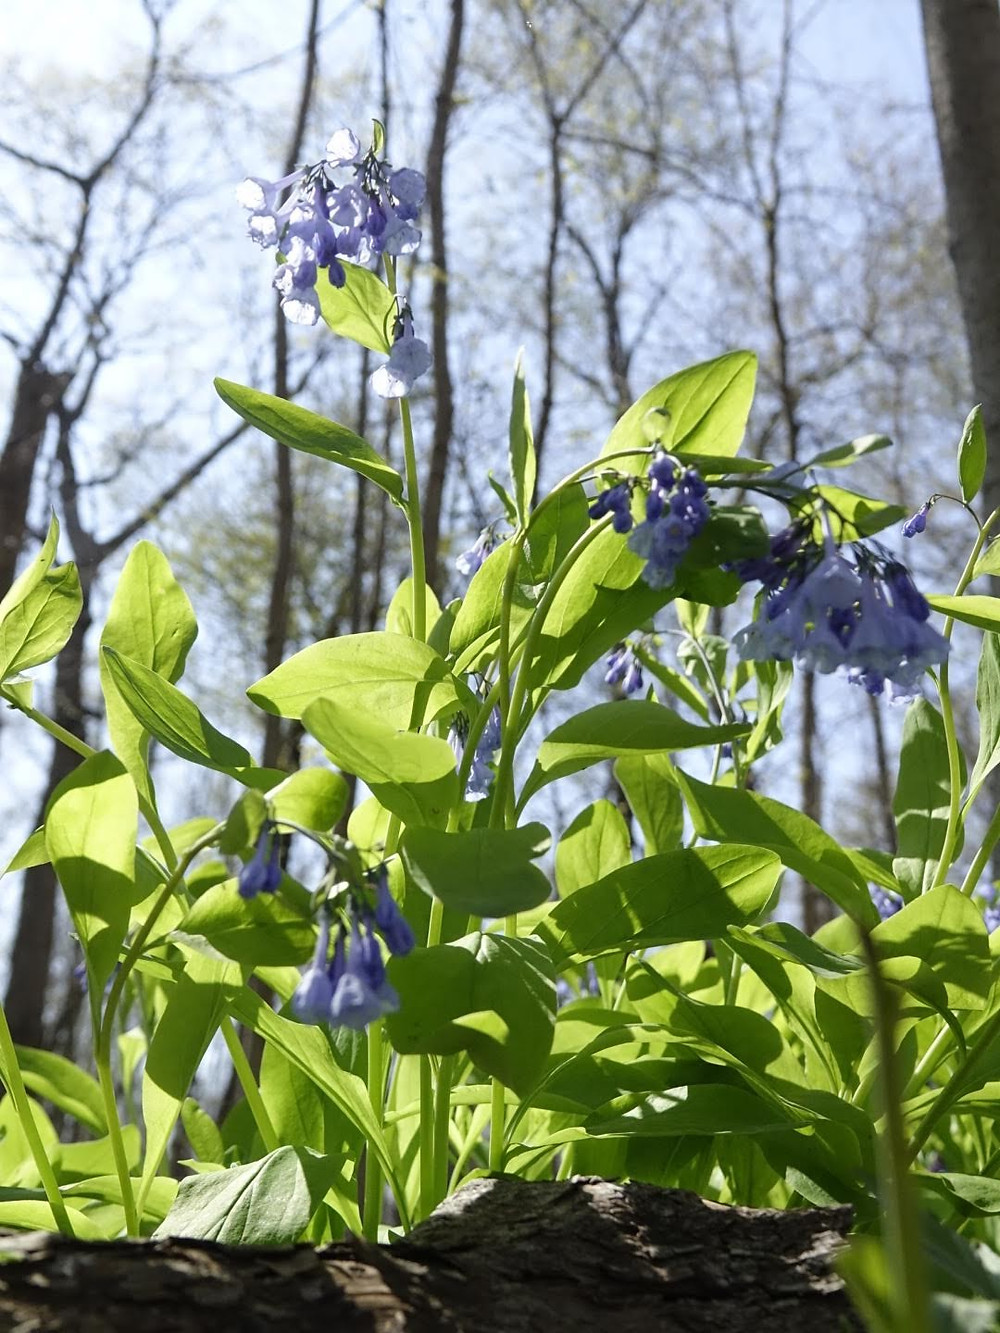 Photograph of bluebells from the ground up. Copyright S. Tobias